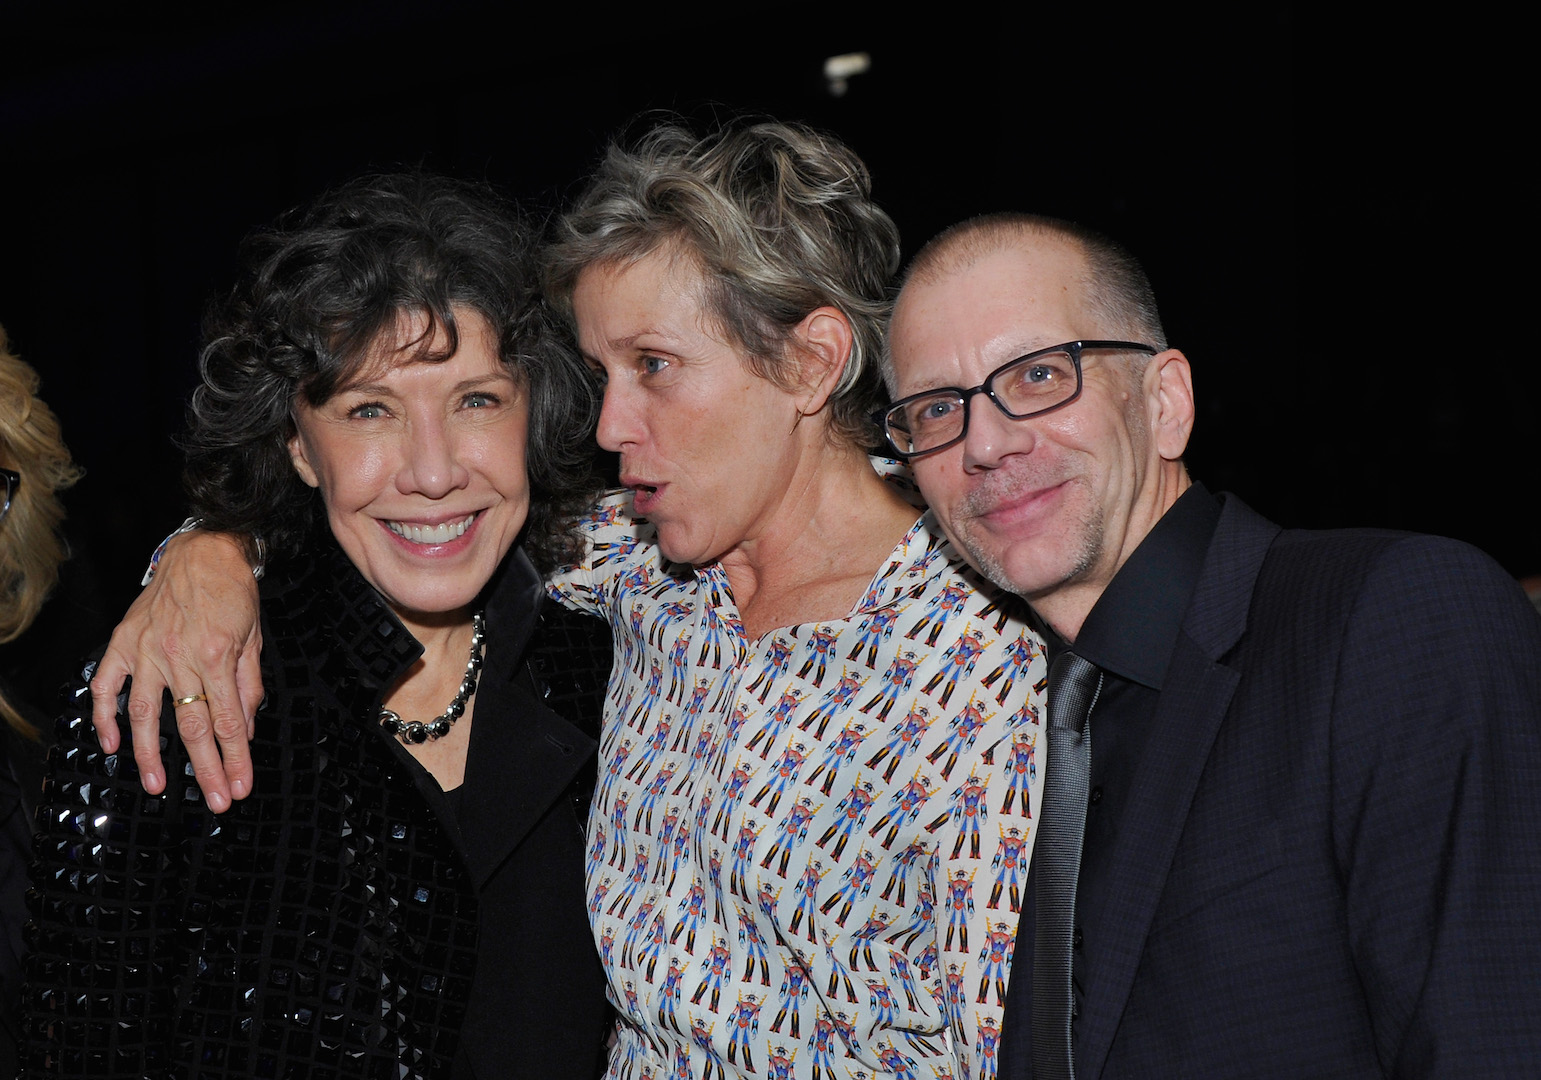 CENTURY CITY, CA - NOVEMBER 07: (L-R) Actress Lily Tomlin, actress Frances McDormand and honoree  Ron Nyswaner attend the Los Angeles LGBT Center 46th Anniversary Gala Vanguard Awards at the Hyatt Regency Century Plaza on November 7, 2015 in Century City, California.  (Photo by John Sciulli/Getty Images for Los Angeles LGBT Center)